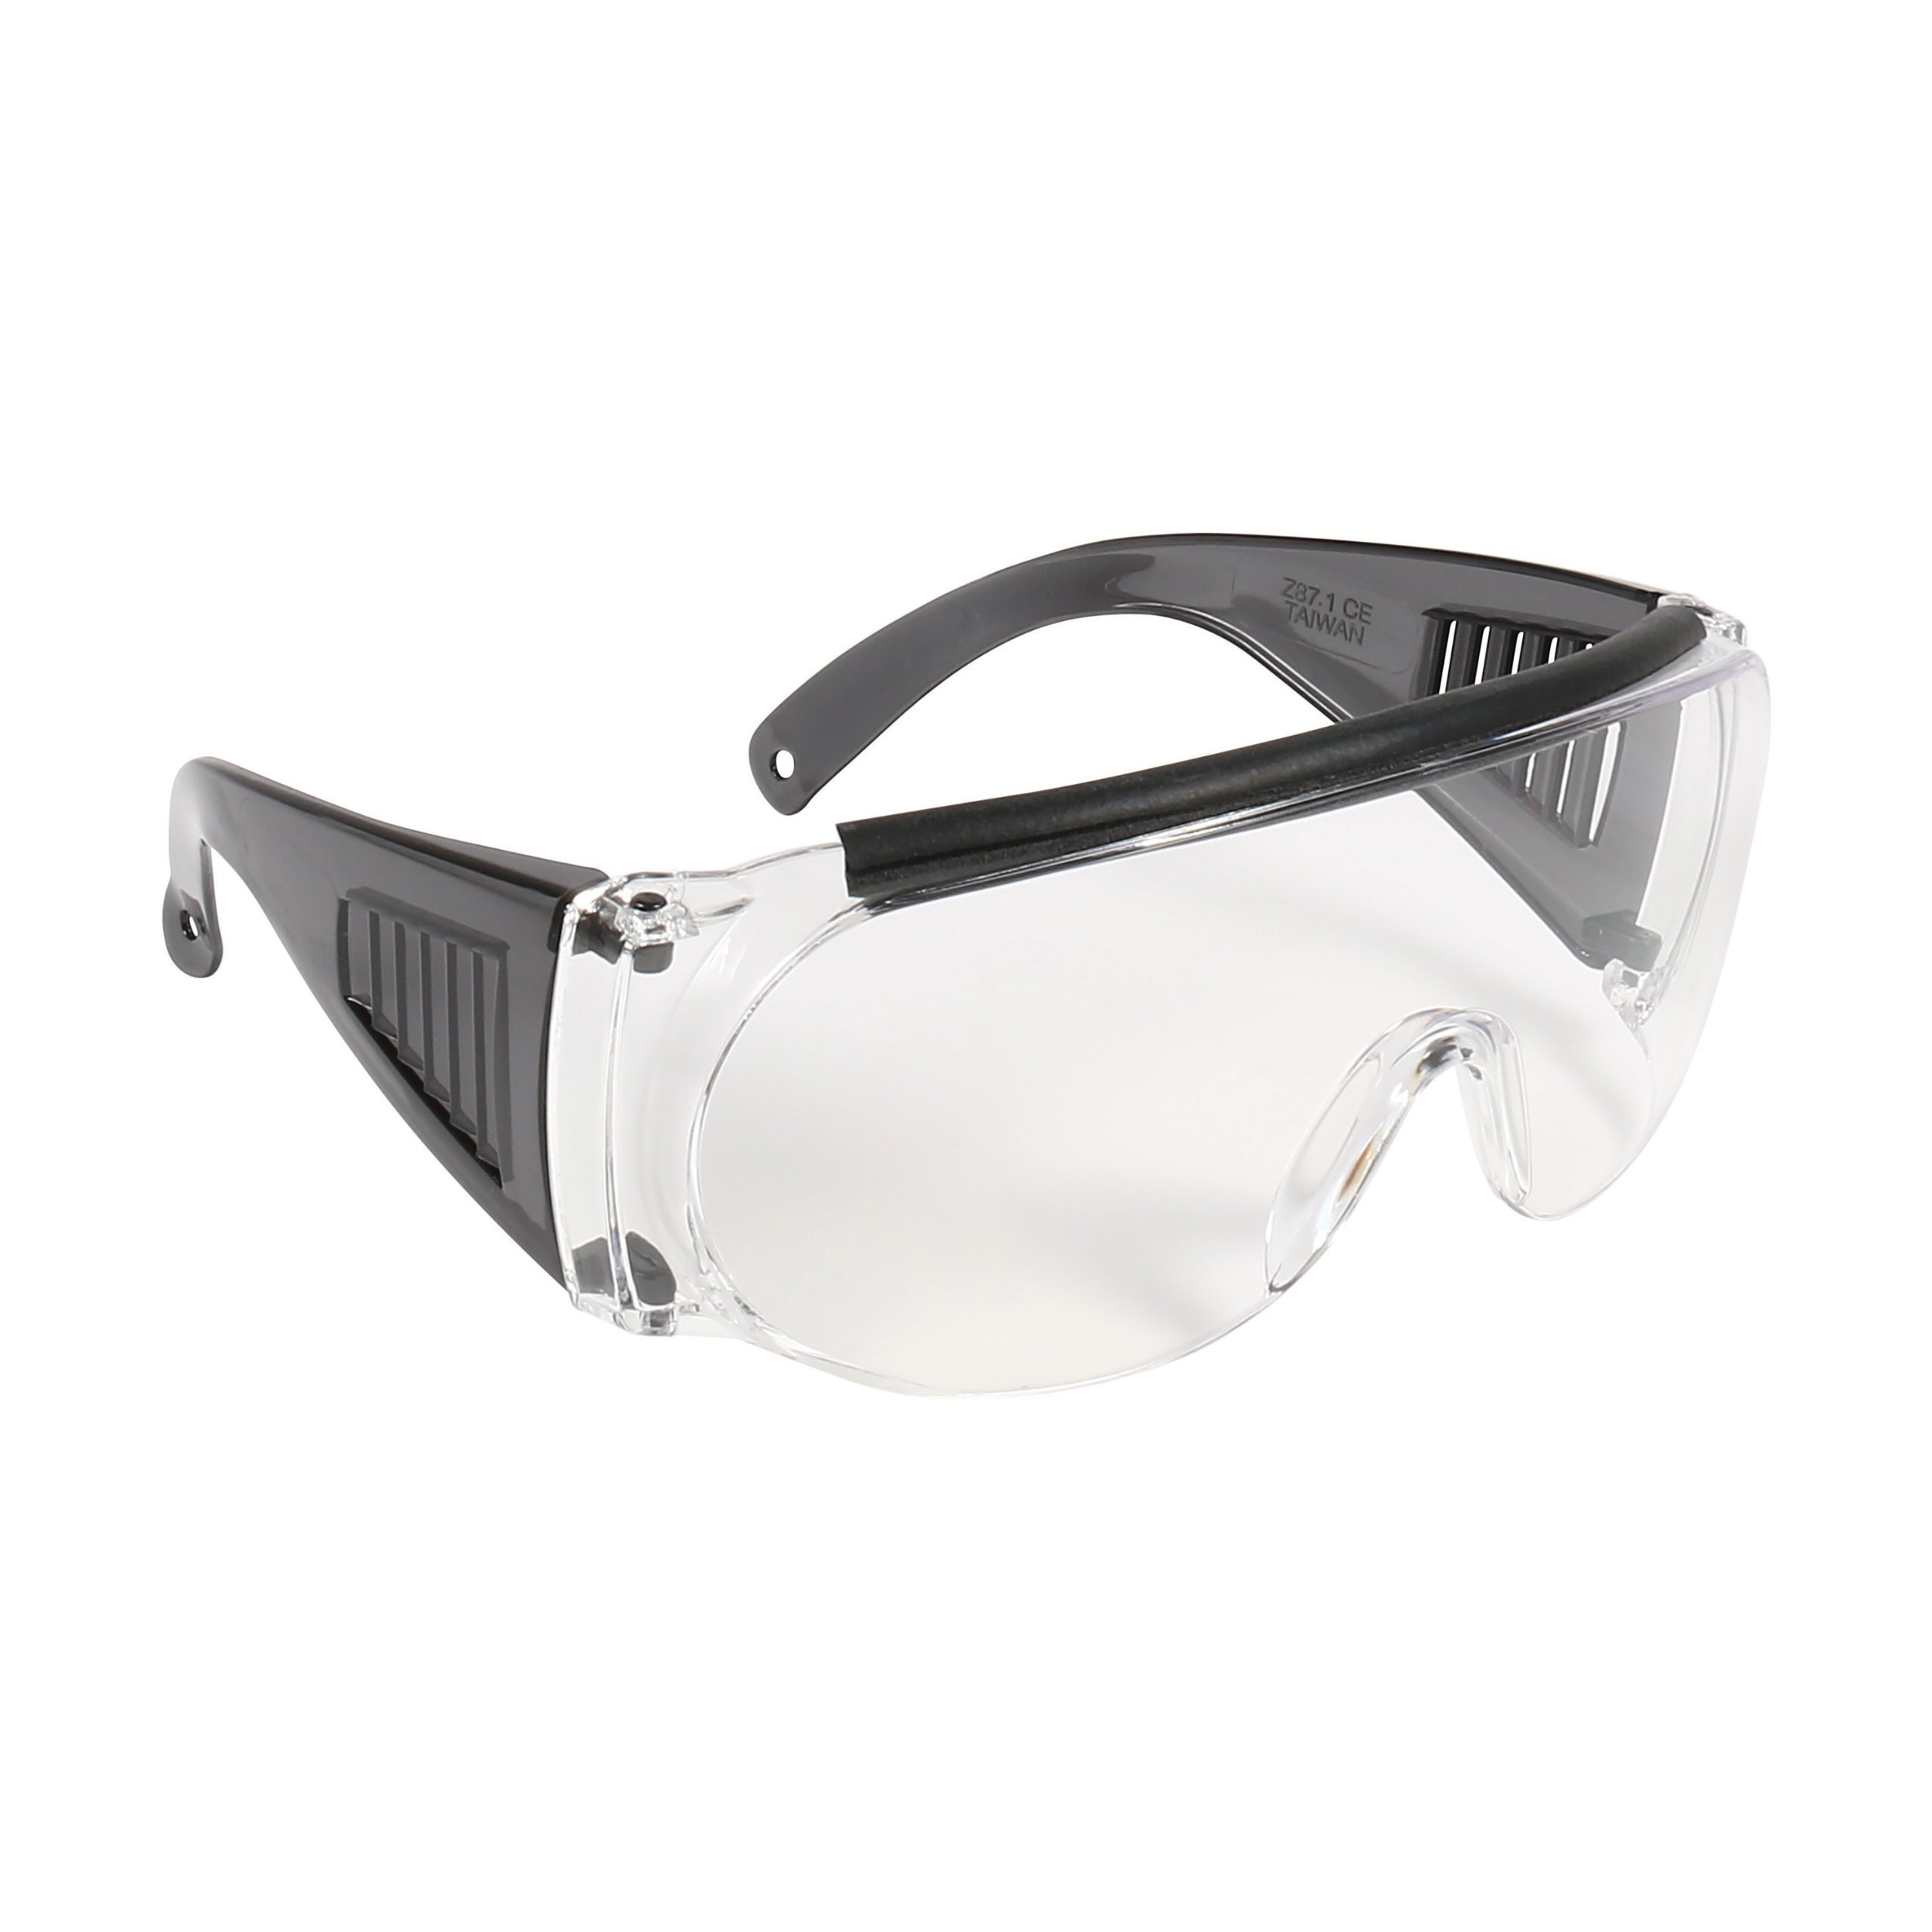 38b79dceb81 Allen Company Shooting   Safety Glasses for Use with Prescription Glasses